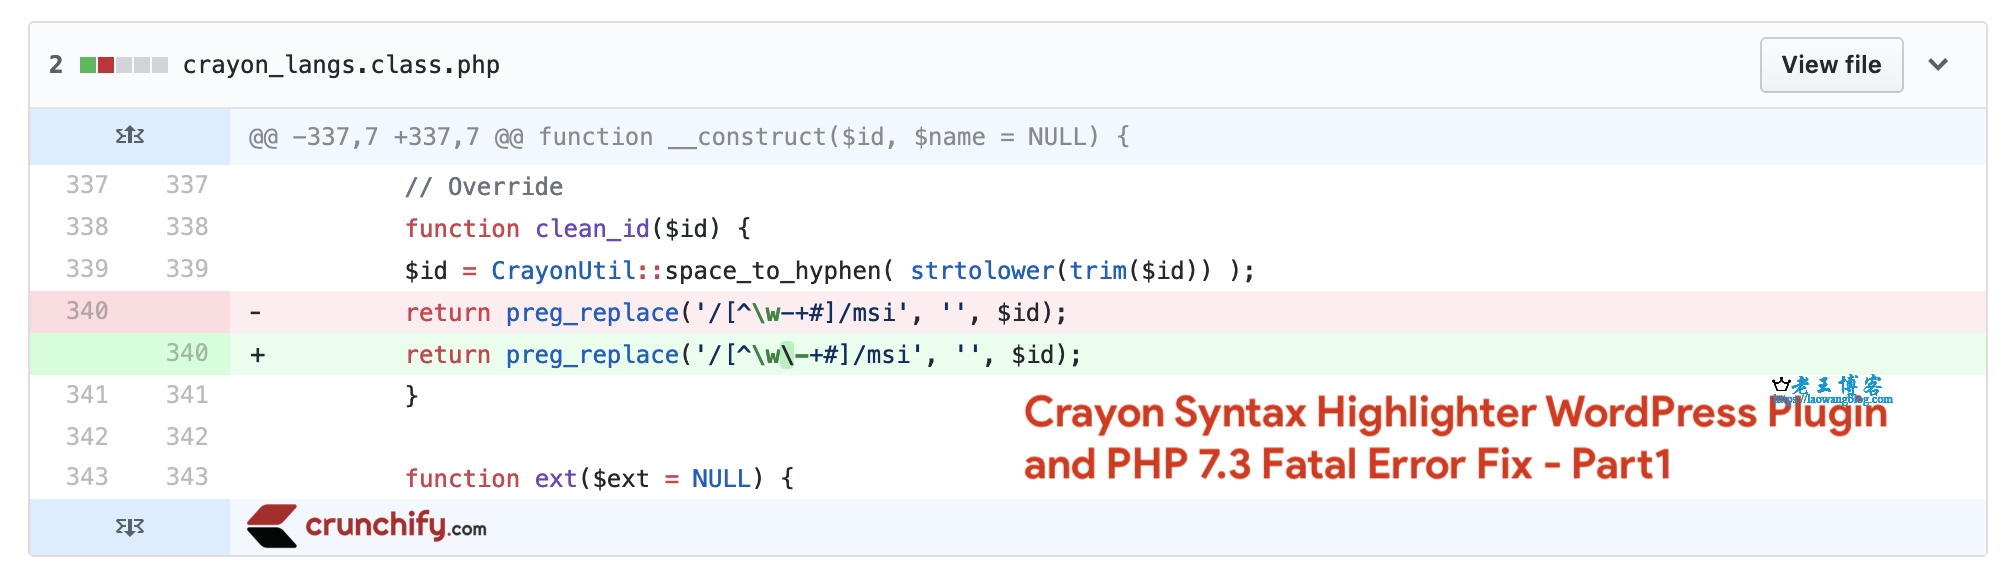 Crayon Syntax Highlighter 在新版本 PHP 下出现错误(Fatal Error)的解决办法